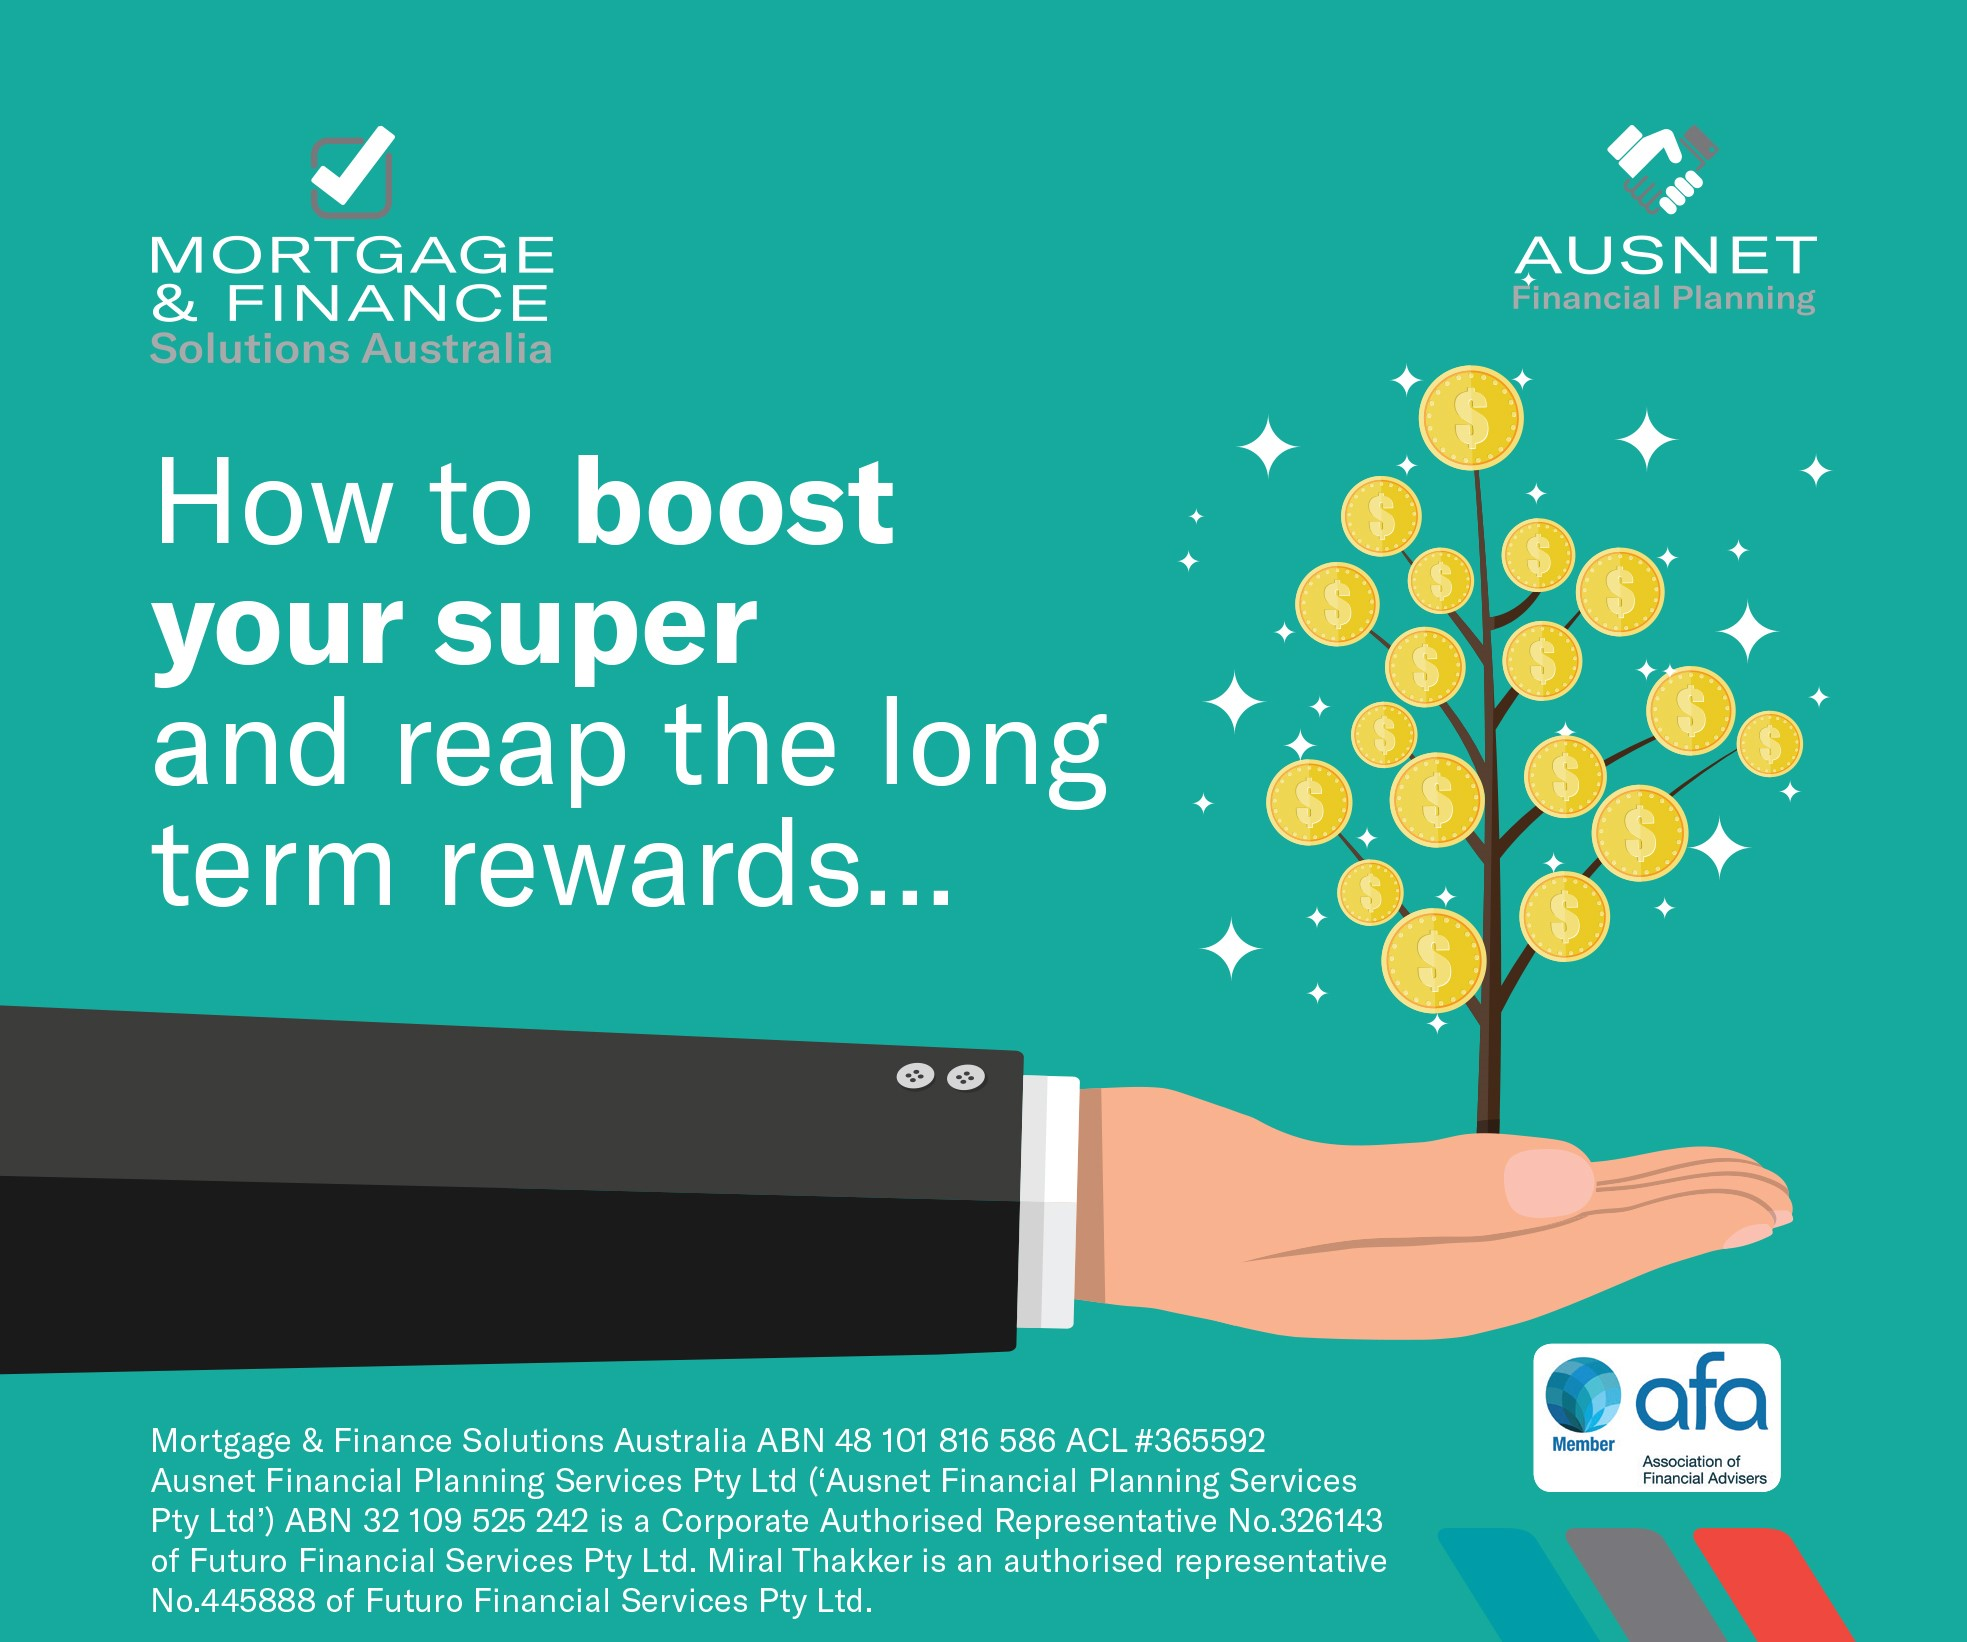 How to Boost your Super and reap the long term rewards